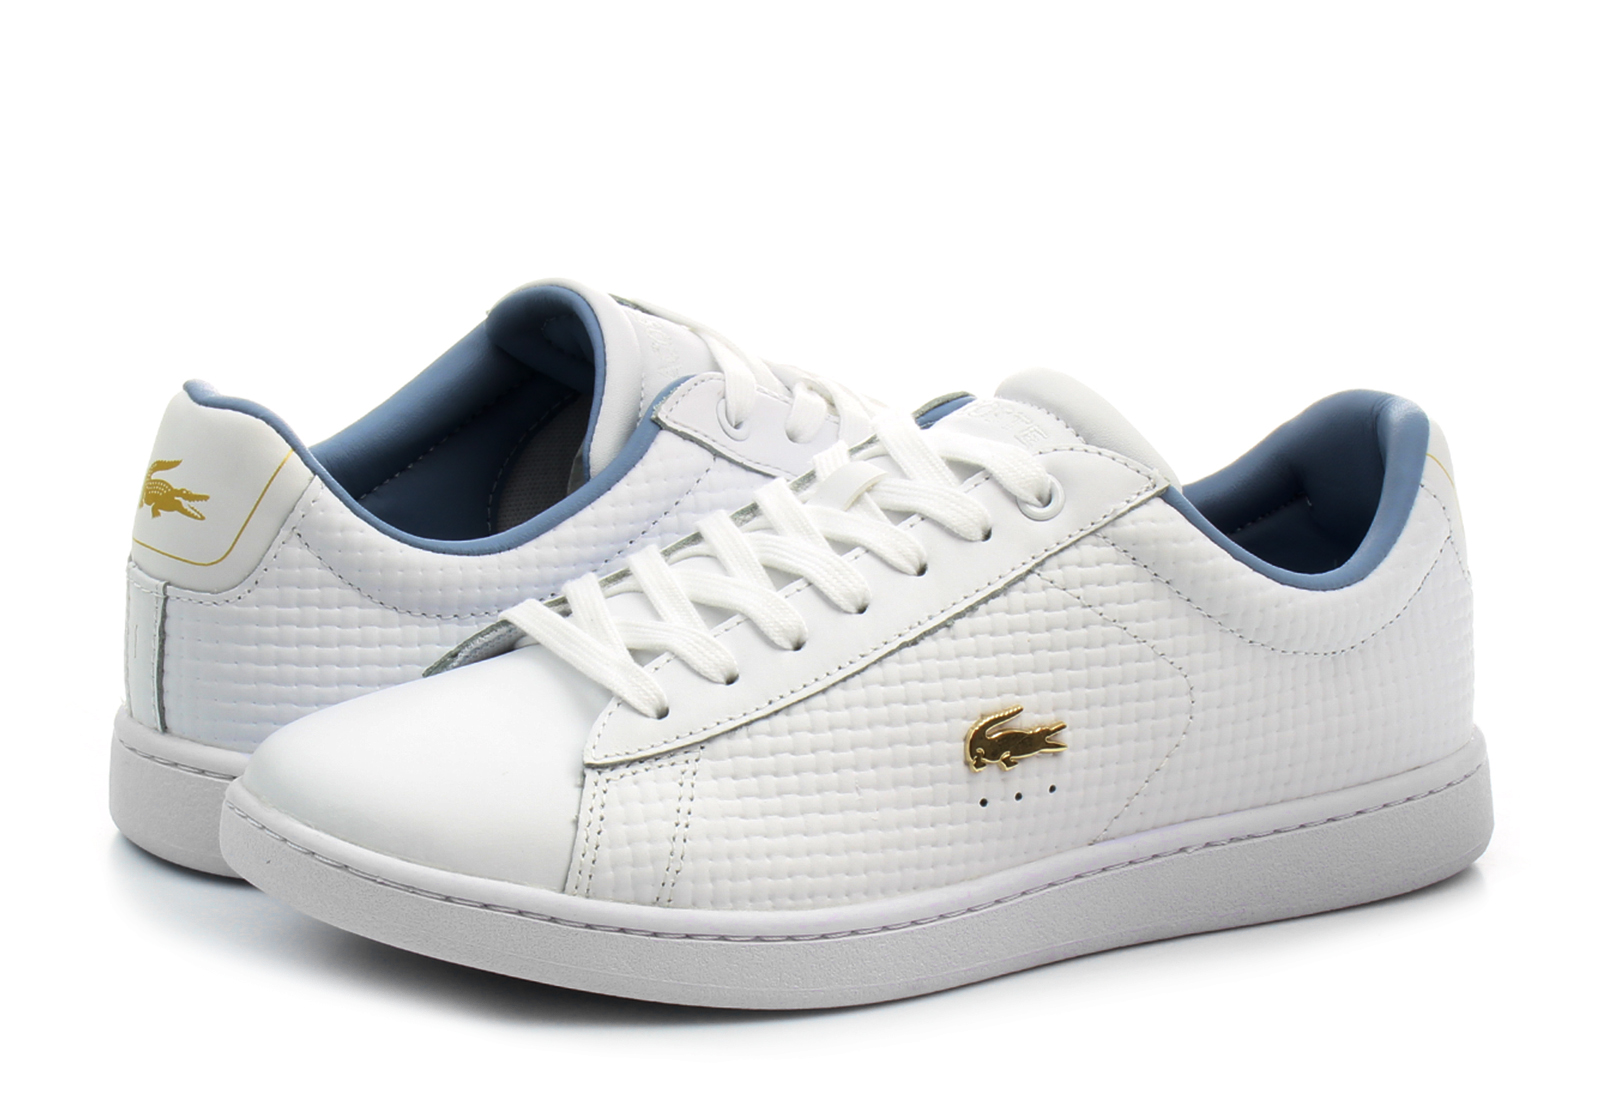 Lacoste Cipő - Carnaby Evo 118 5 - 181spw0012-1t3 - Office Shoes ... 3ff7eac67a